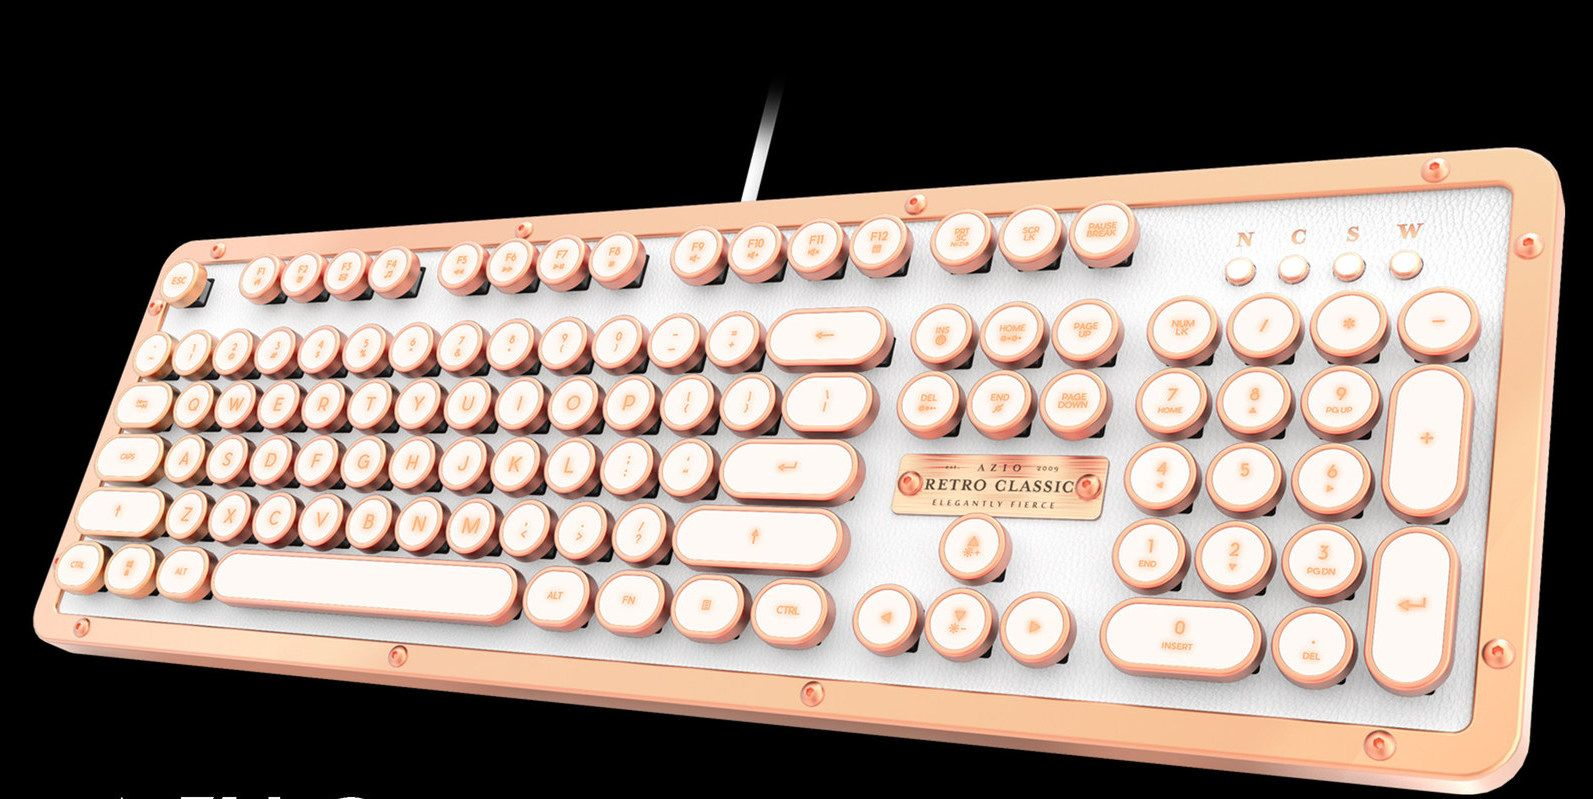 A Retro Keyboard In Bluetooth Or Wired Usb Forms For Macs Or Windows Computers How Beautiful Is This Keyboard Retro Cool Stuff